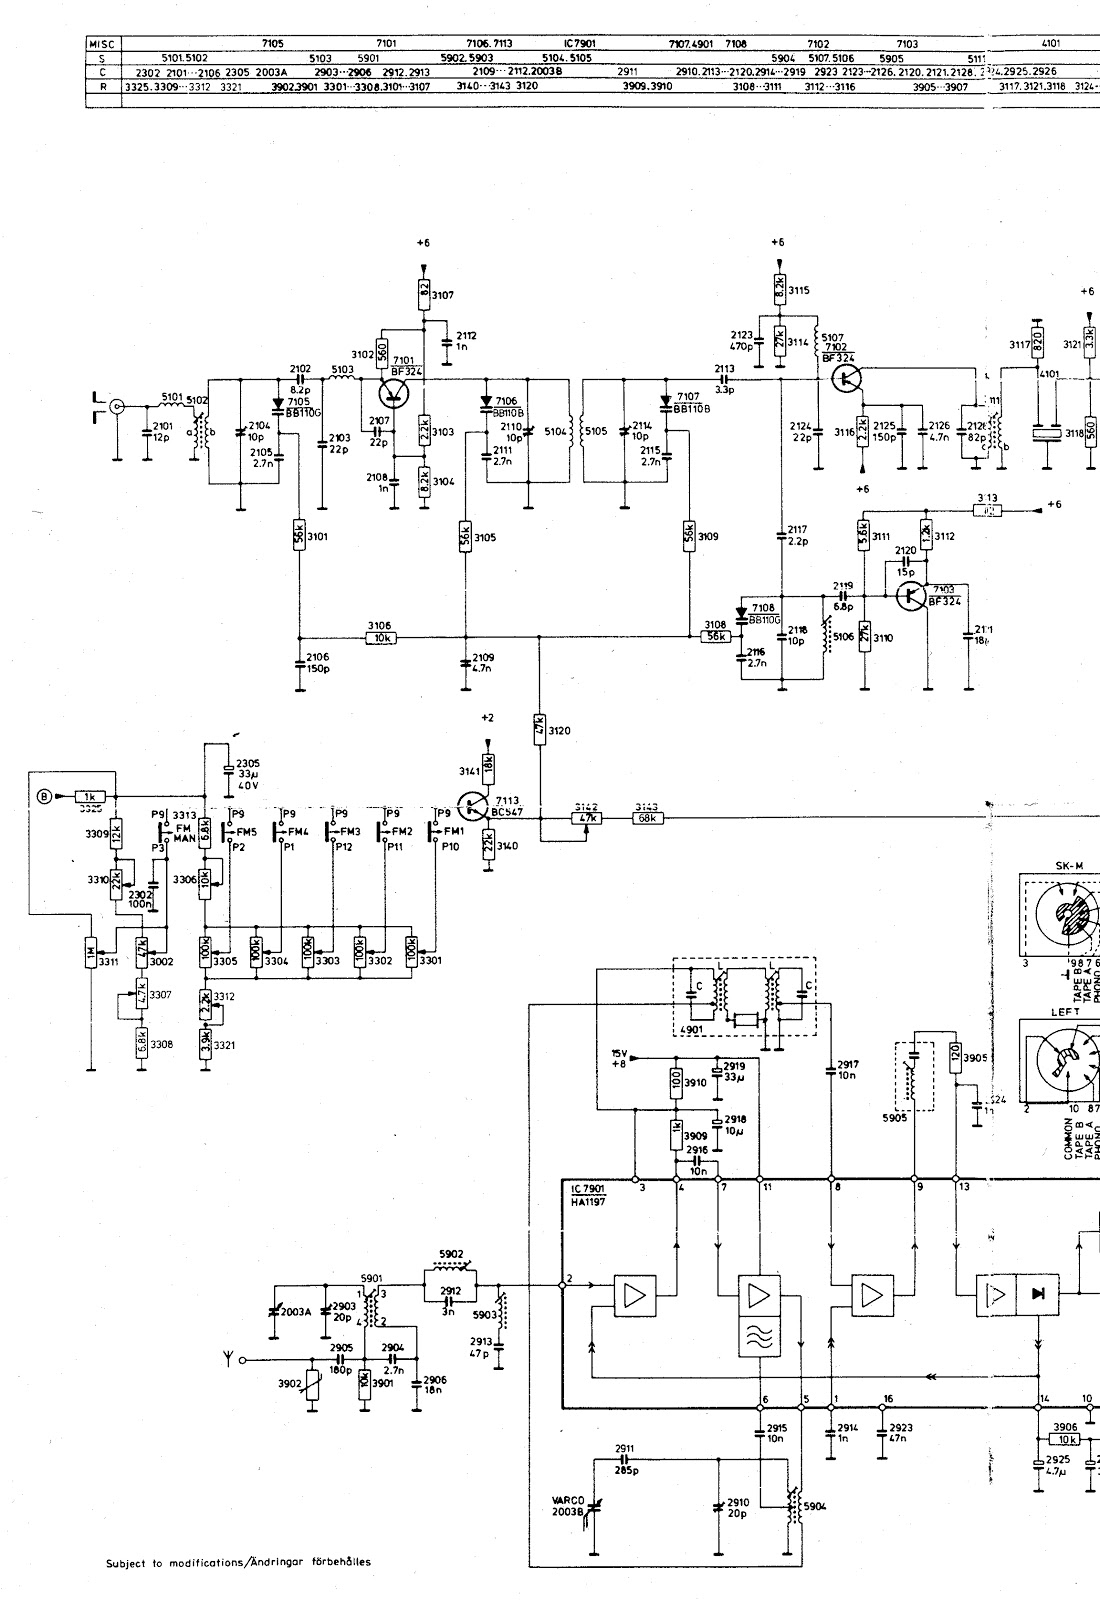 PHILIPS  22 AH777 _ SCHEMATIC DIAGRAM _ STEREO RECEIVER